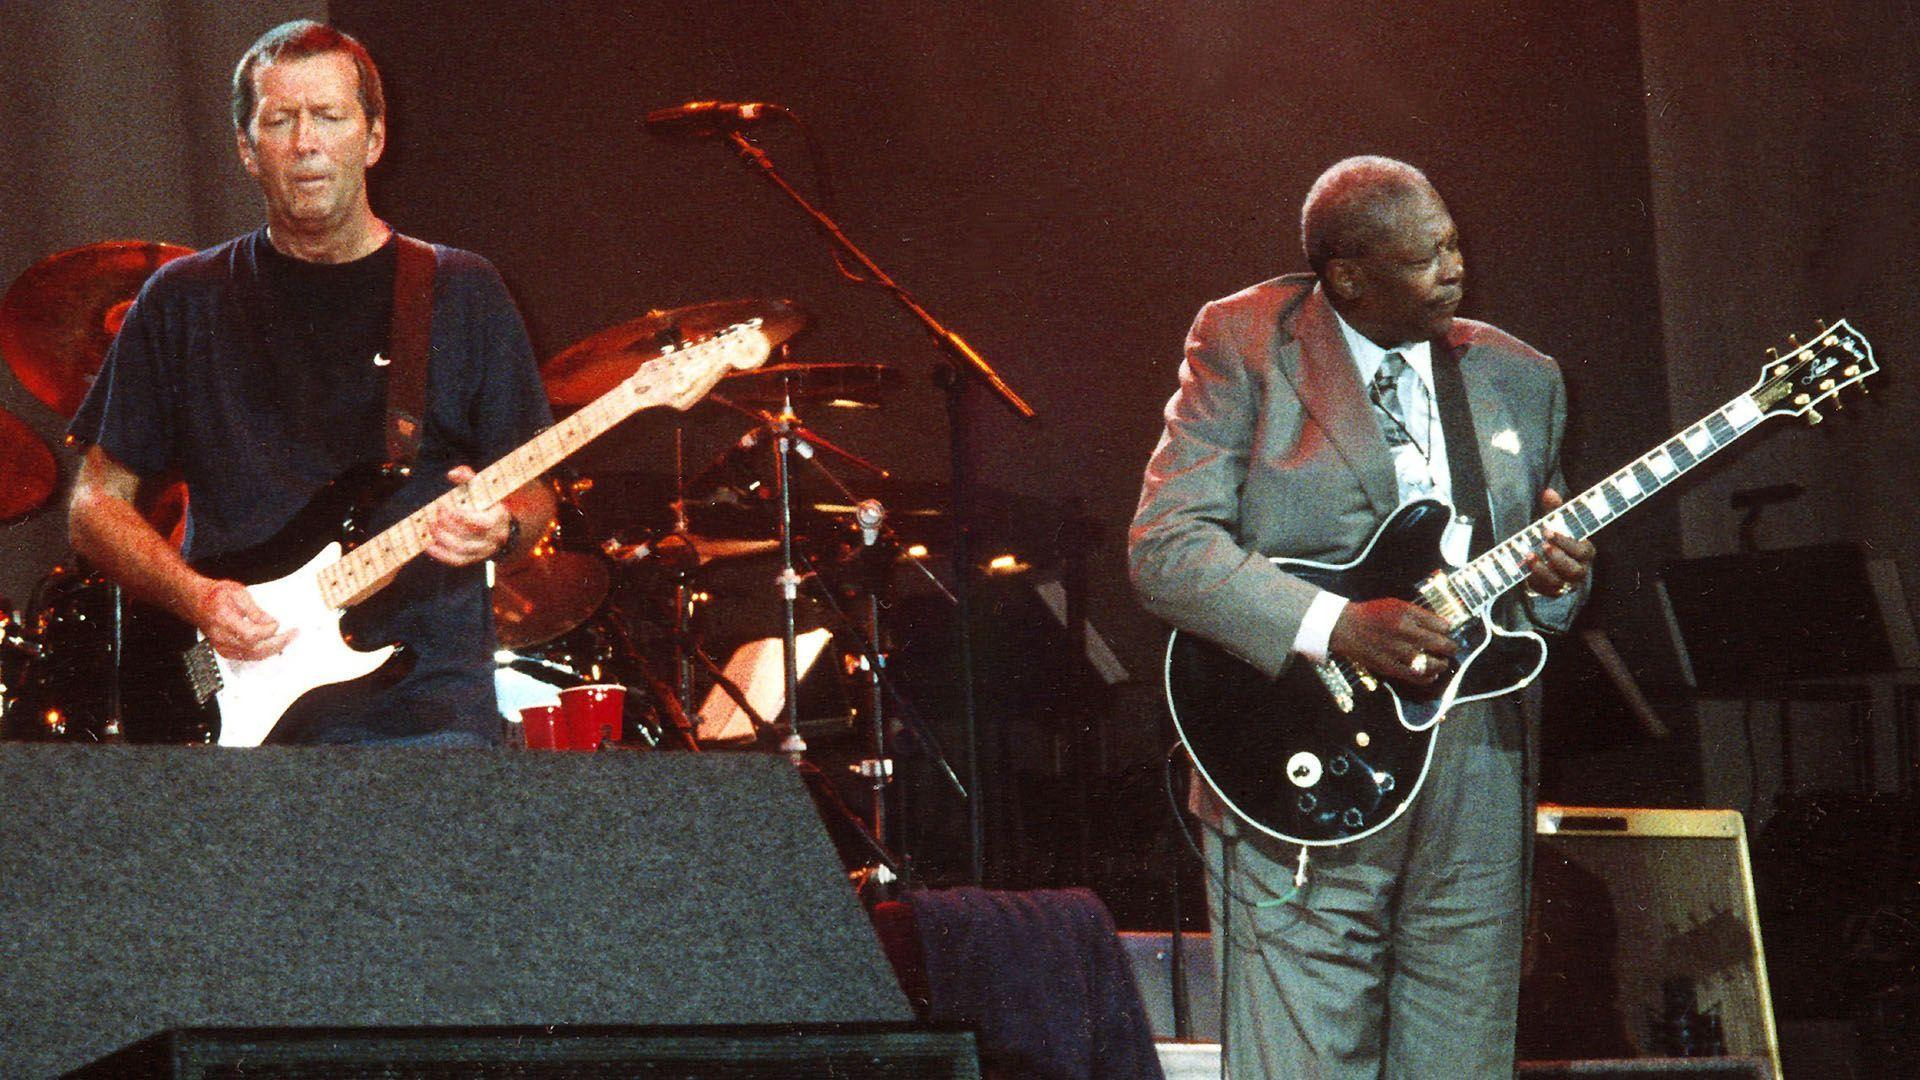 Music B.b. King & Eric Clapton Wallpapers 1920x1080 px Free